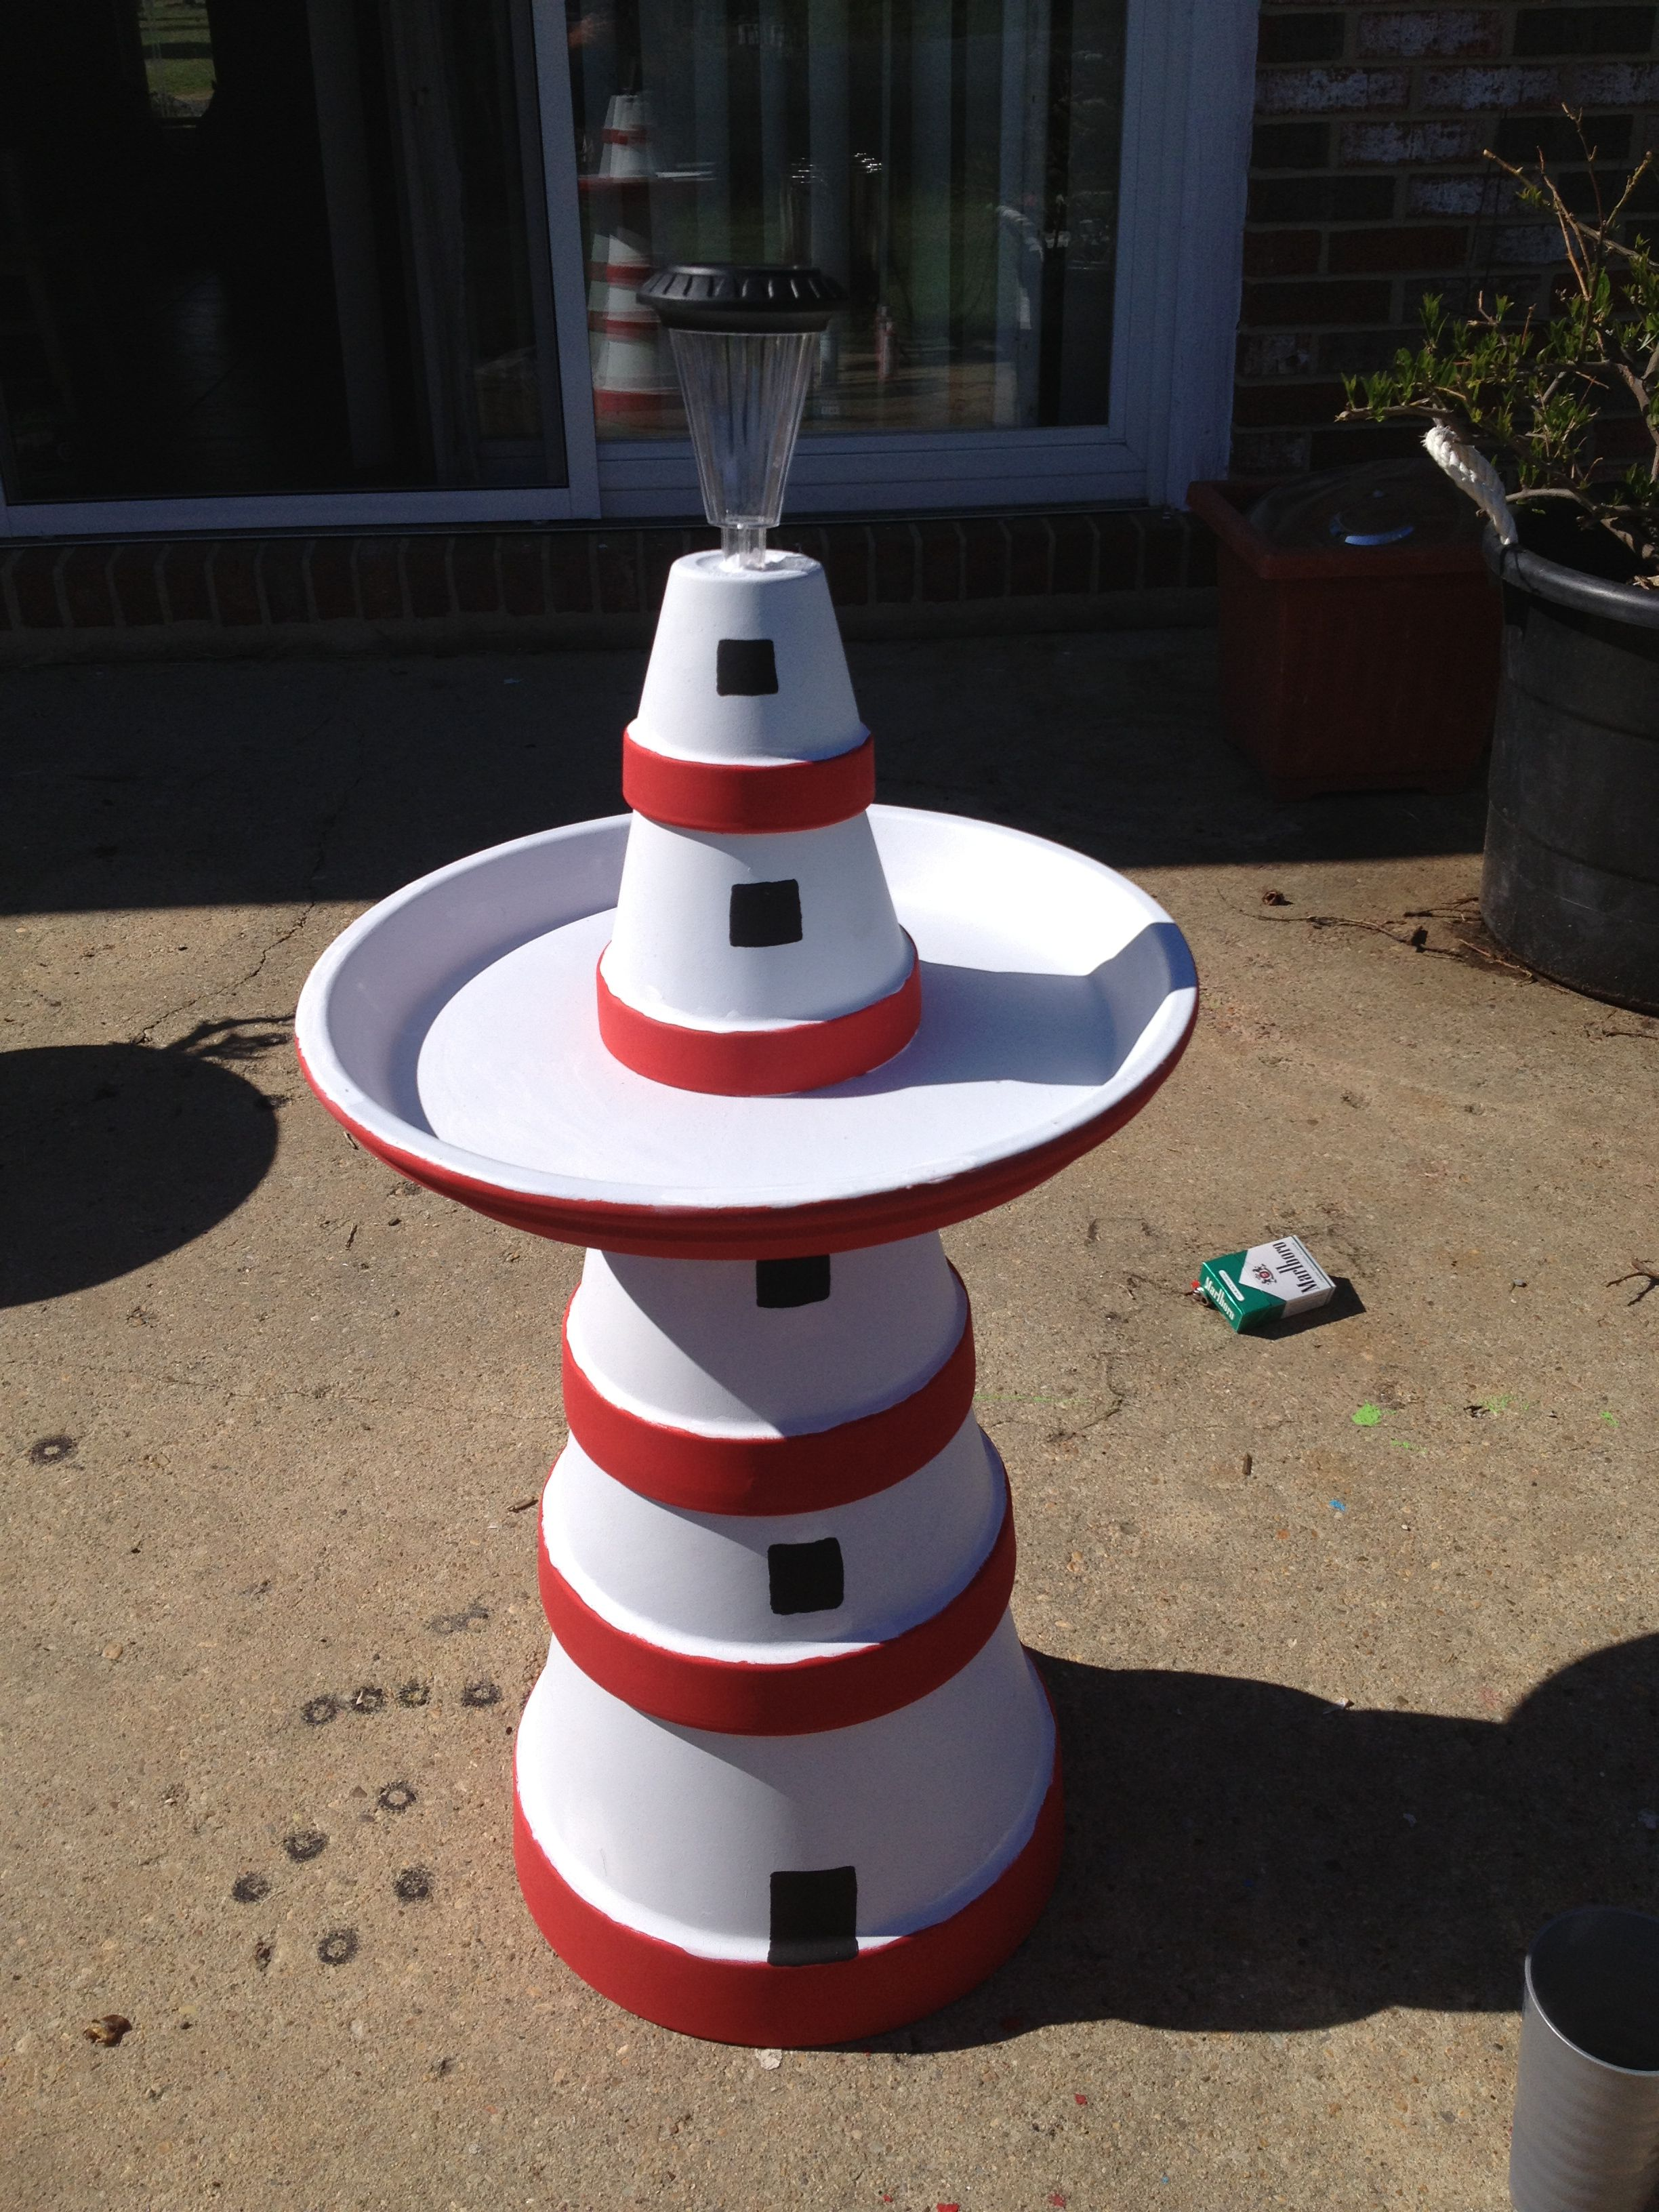 Diy make a clay pot lighthouse diy craft projects - How To Make A Clay Pot Bird Bath For Home Decoration Clay Pot Bird Bath Bird Bath Clay Pot Clay Pot Bath How To Make A Bath